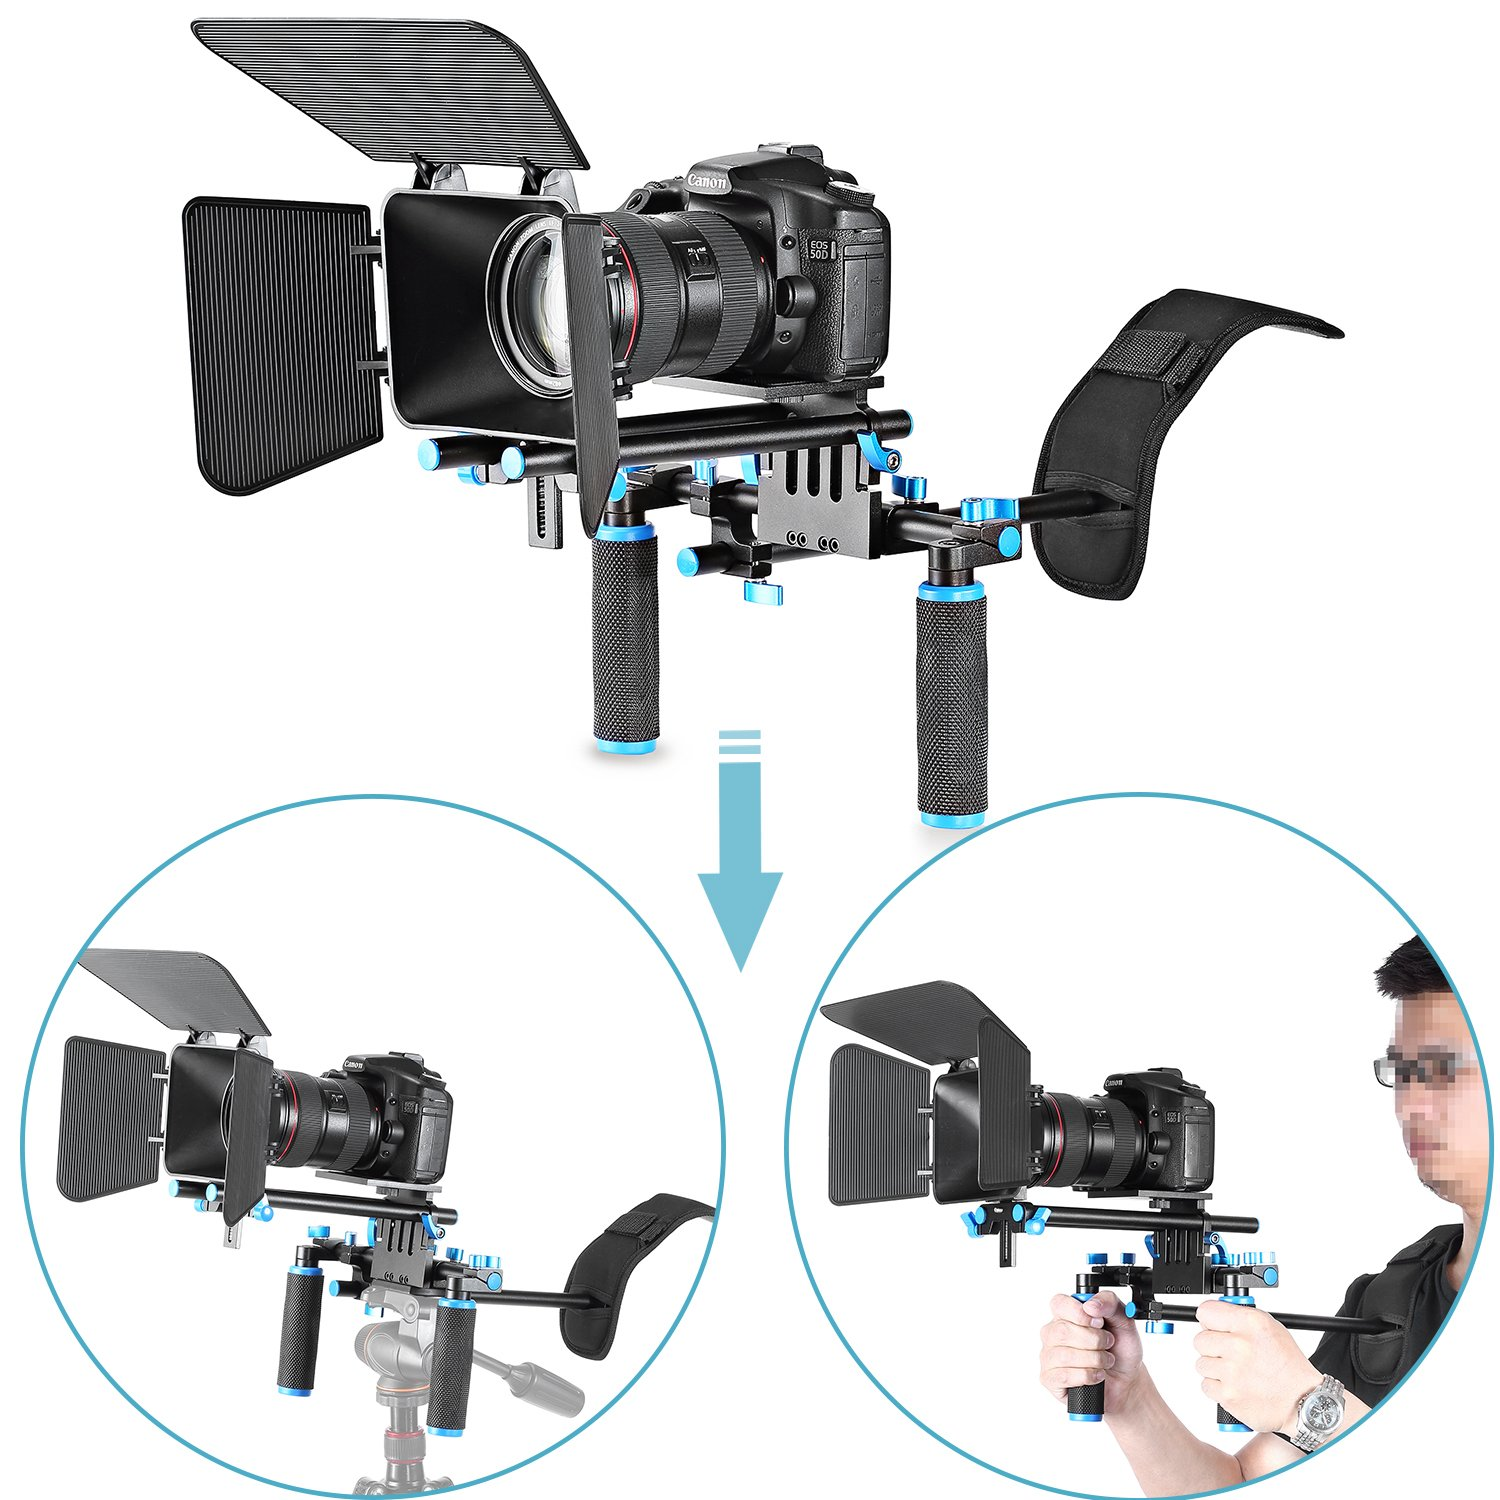 Neewer DSLR Movie Video Making Rig Set System Kit for...